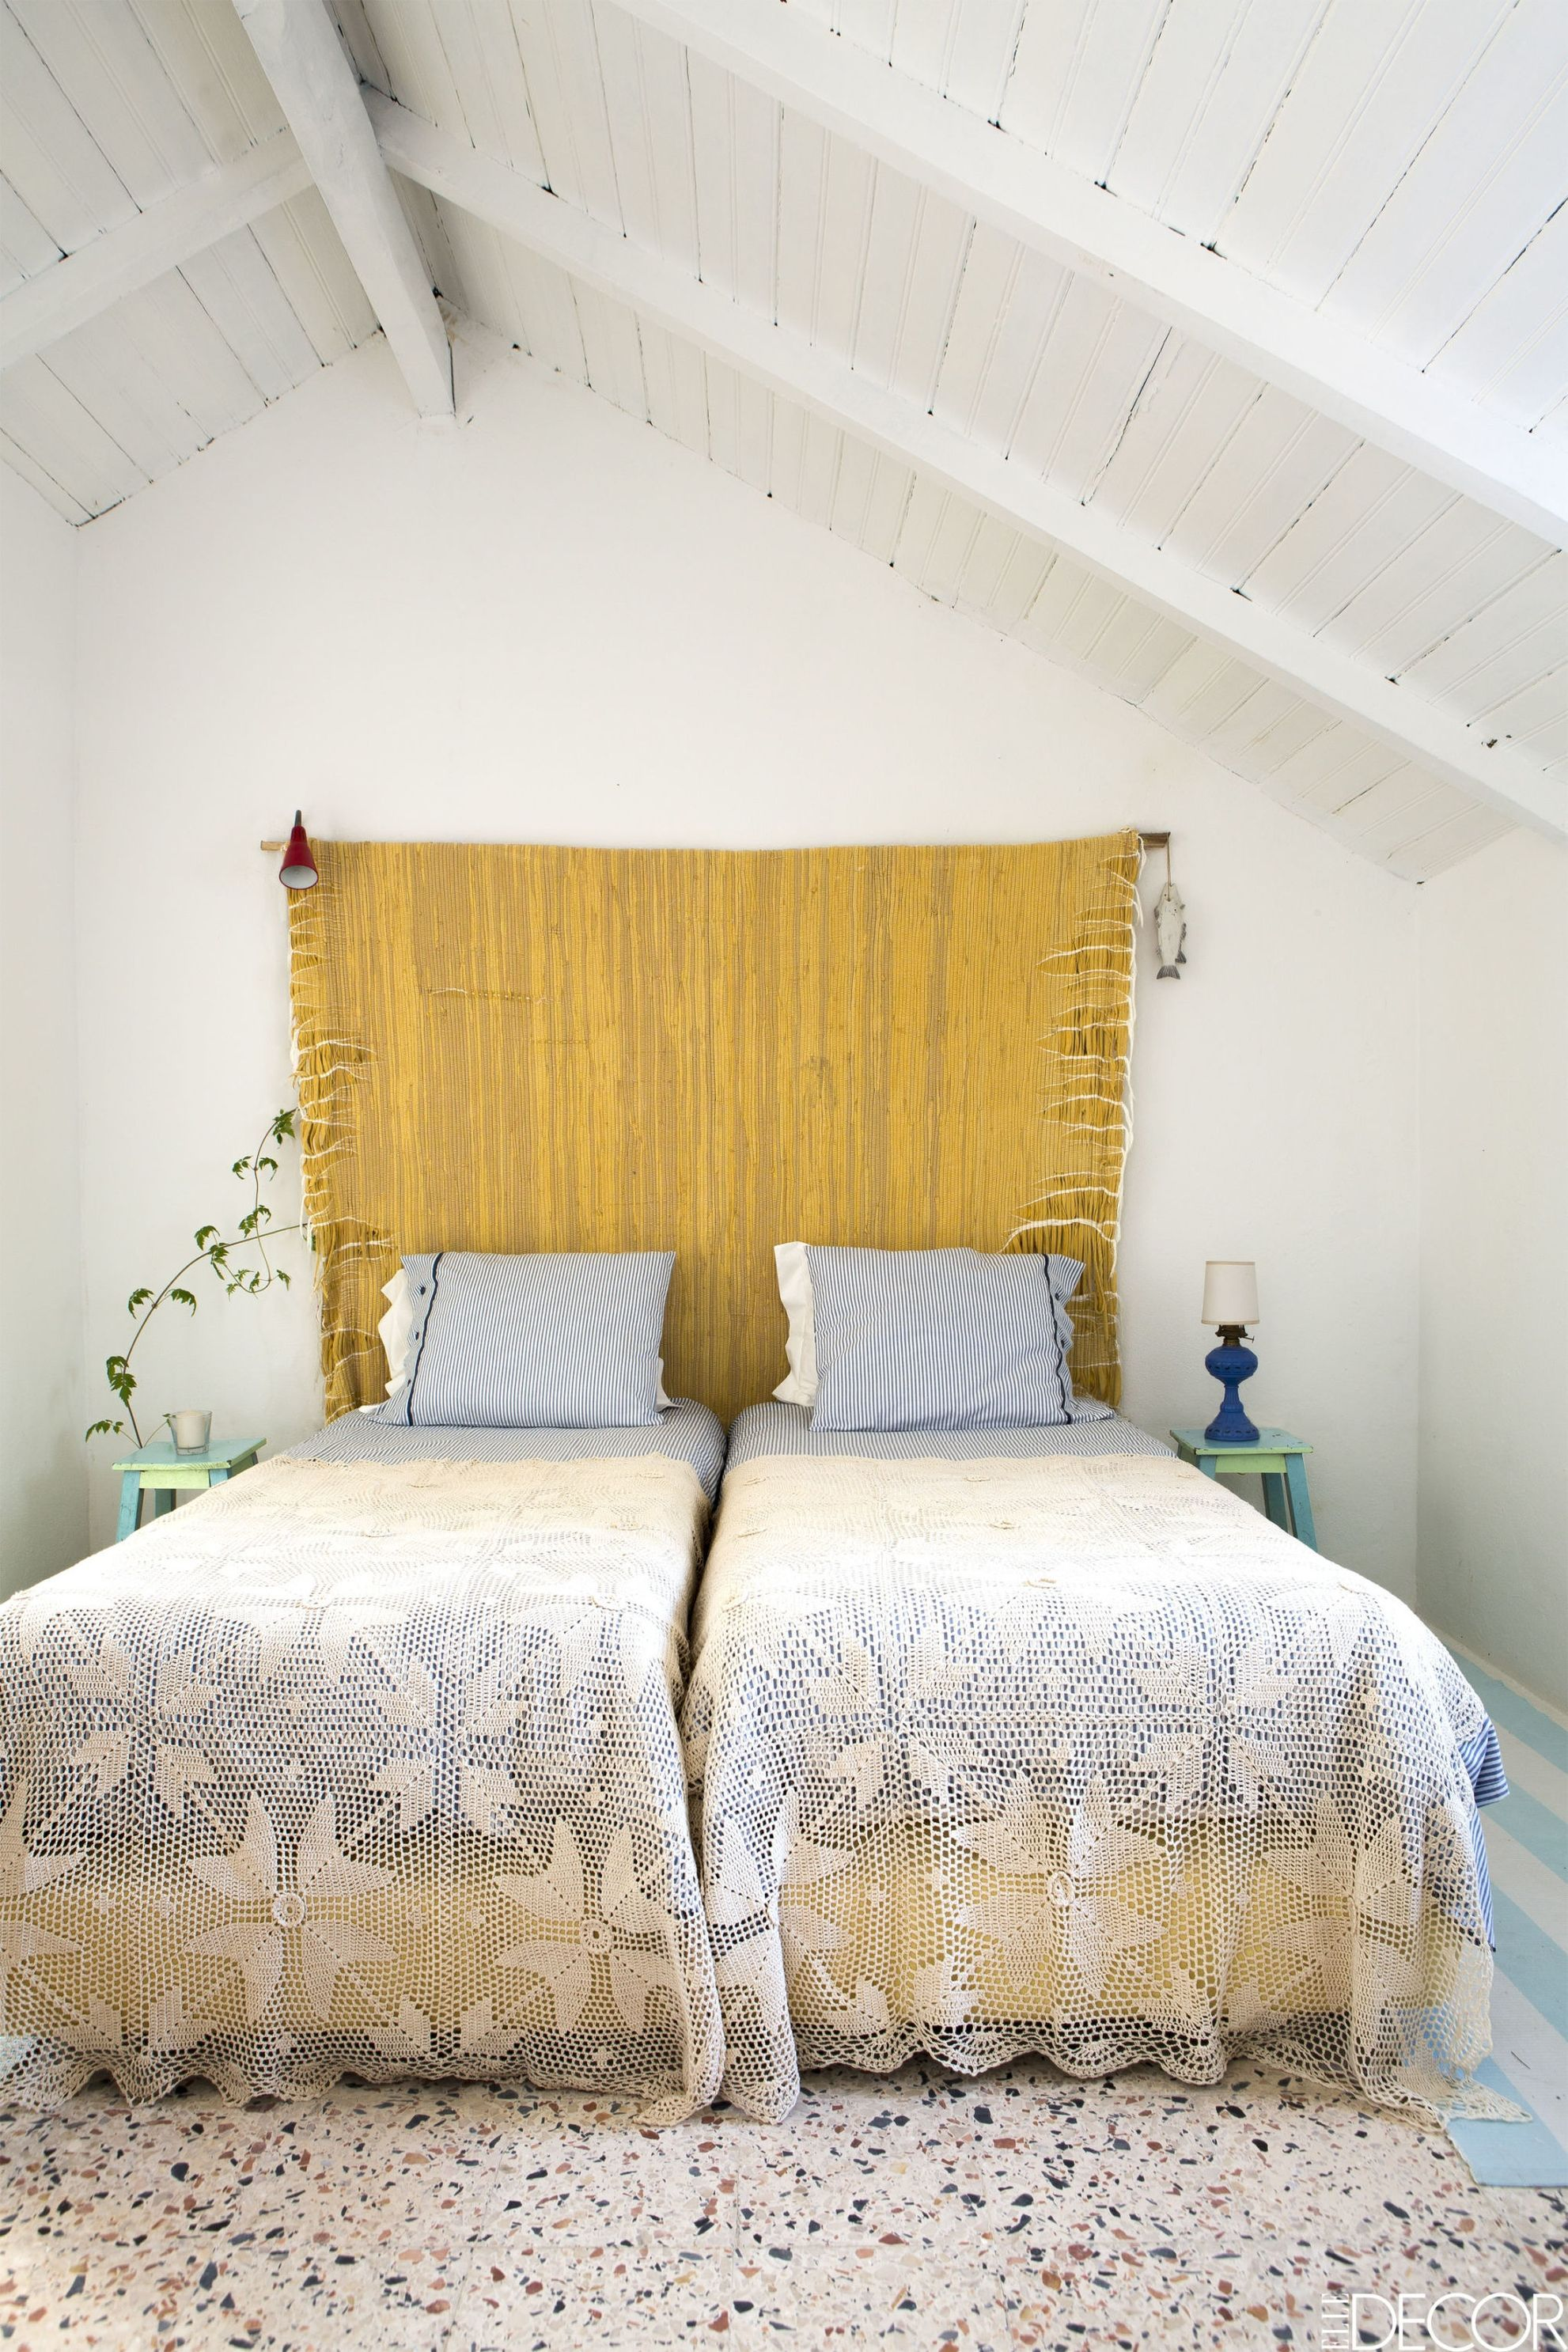 b accommodation and home retreat bed studio holiday beds akaroa coastal